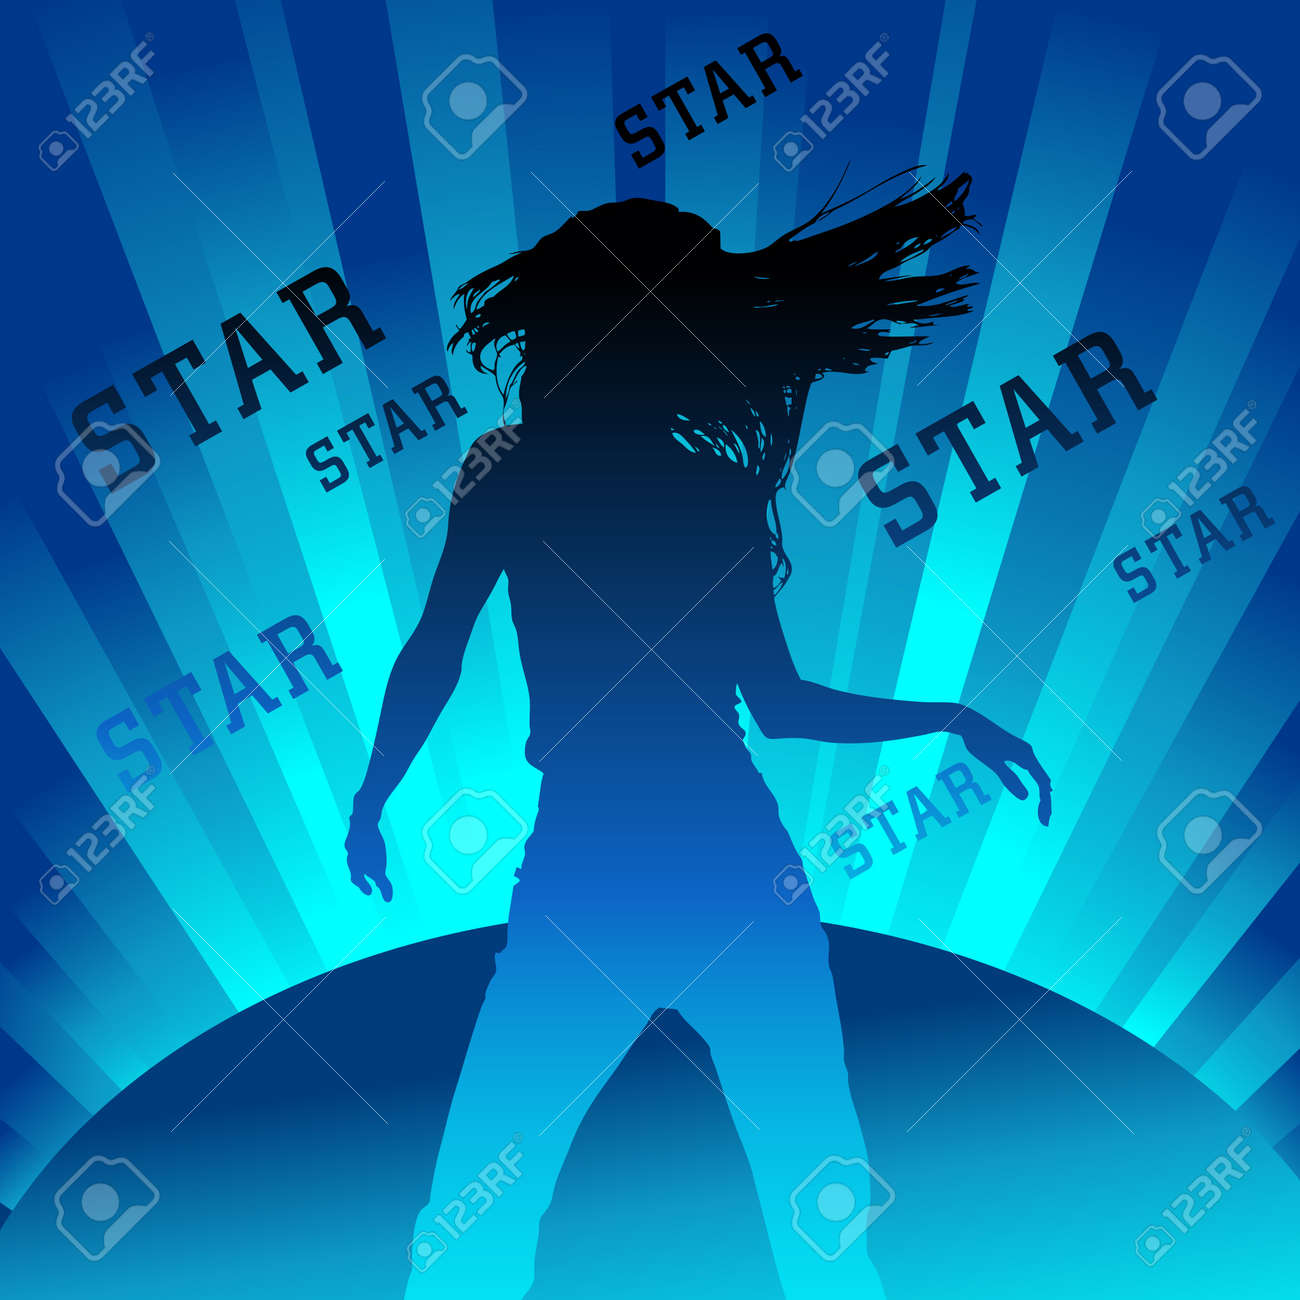 silhouette of dancing figure on shining background Stock Vector - 11475506